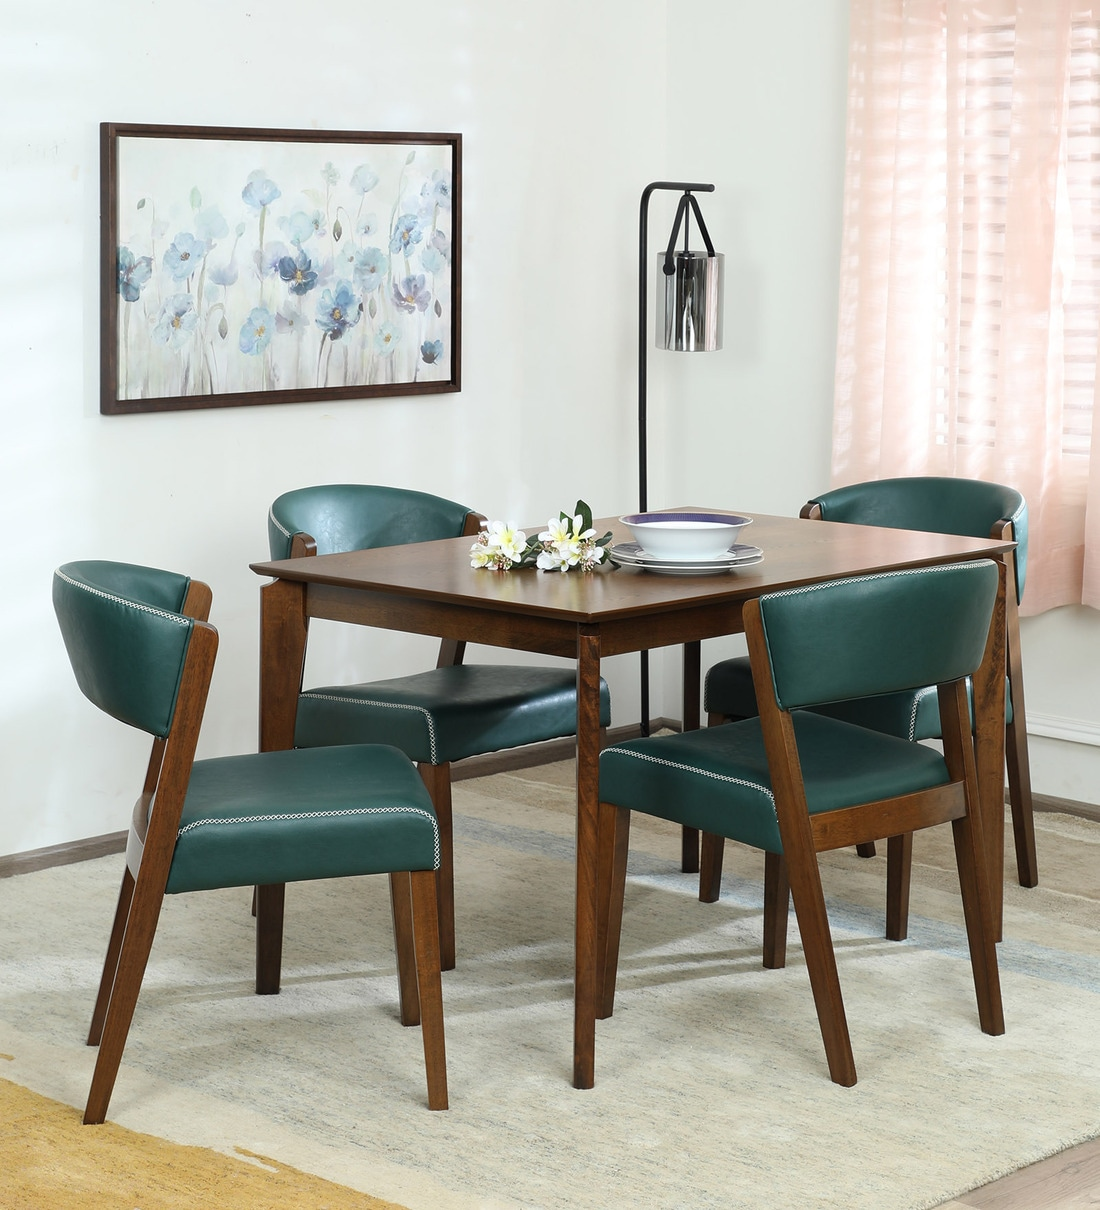 Buy Hajime 4 Seater Dining Set In Walnut Green Finish Casacraft By Pepperfry Online Mid Century Modern 4 Seater Dining Sets Dining Furniture Pepperfry Product